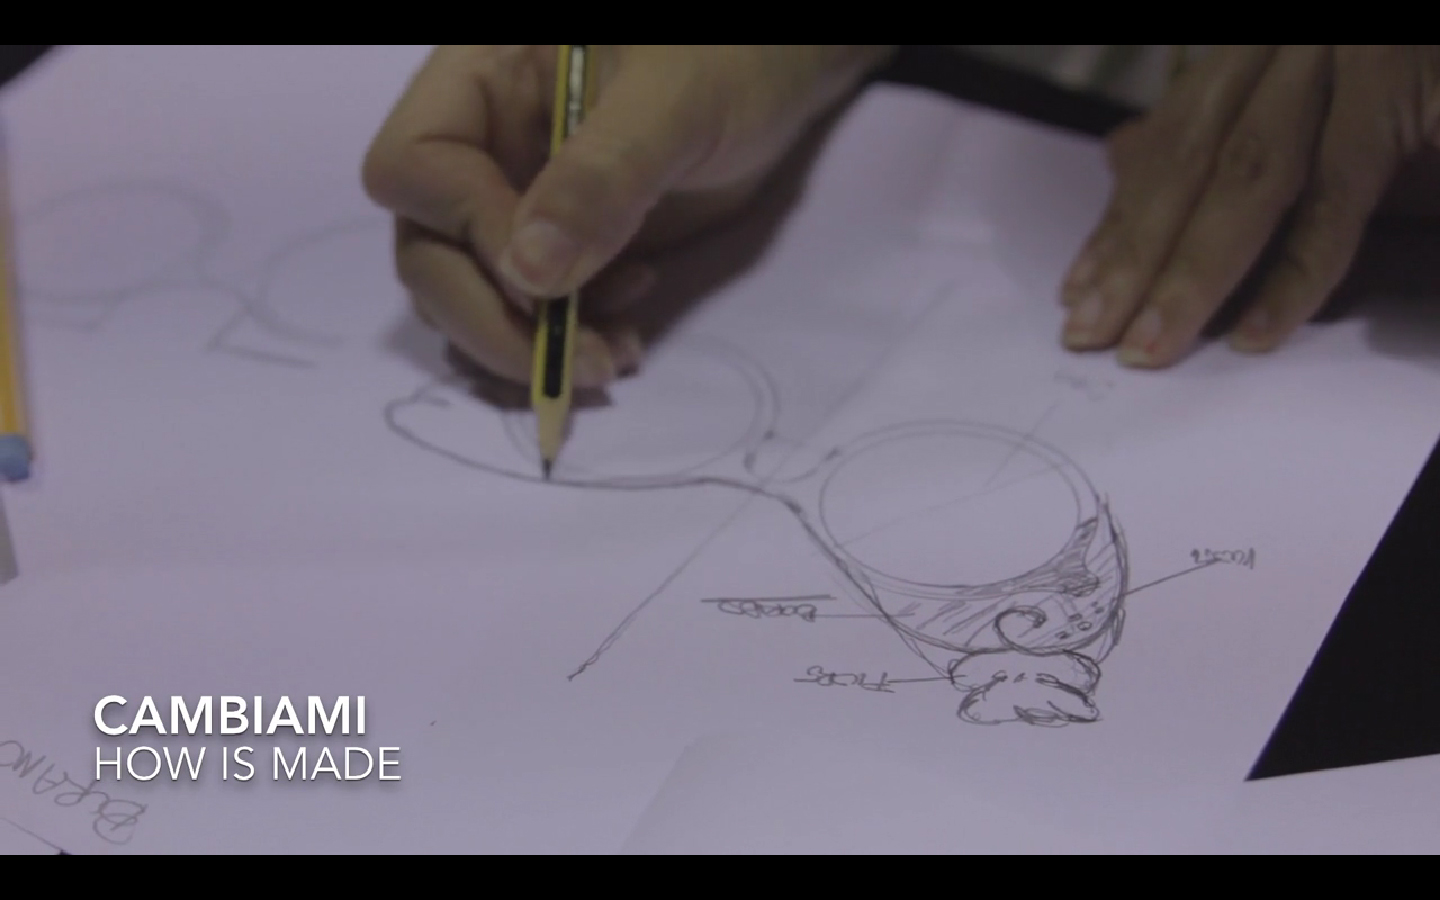 Video #cambiami HOW IS MADE